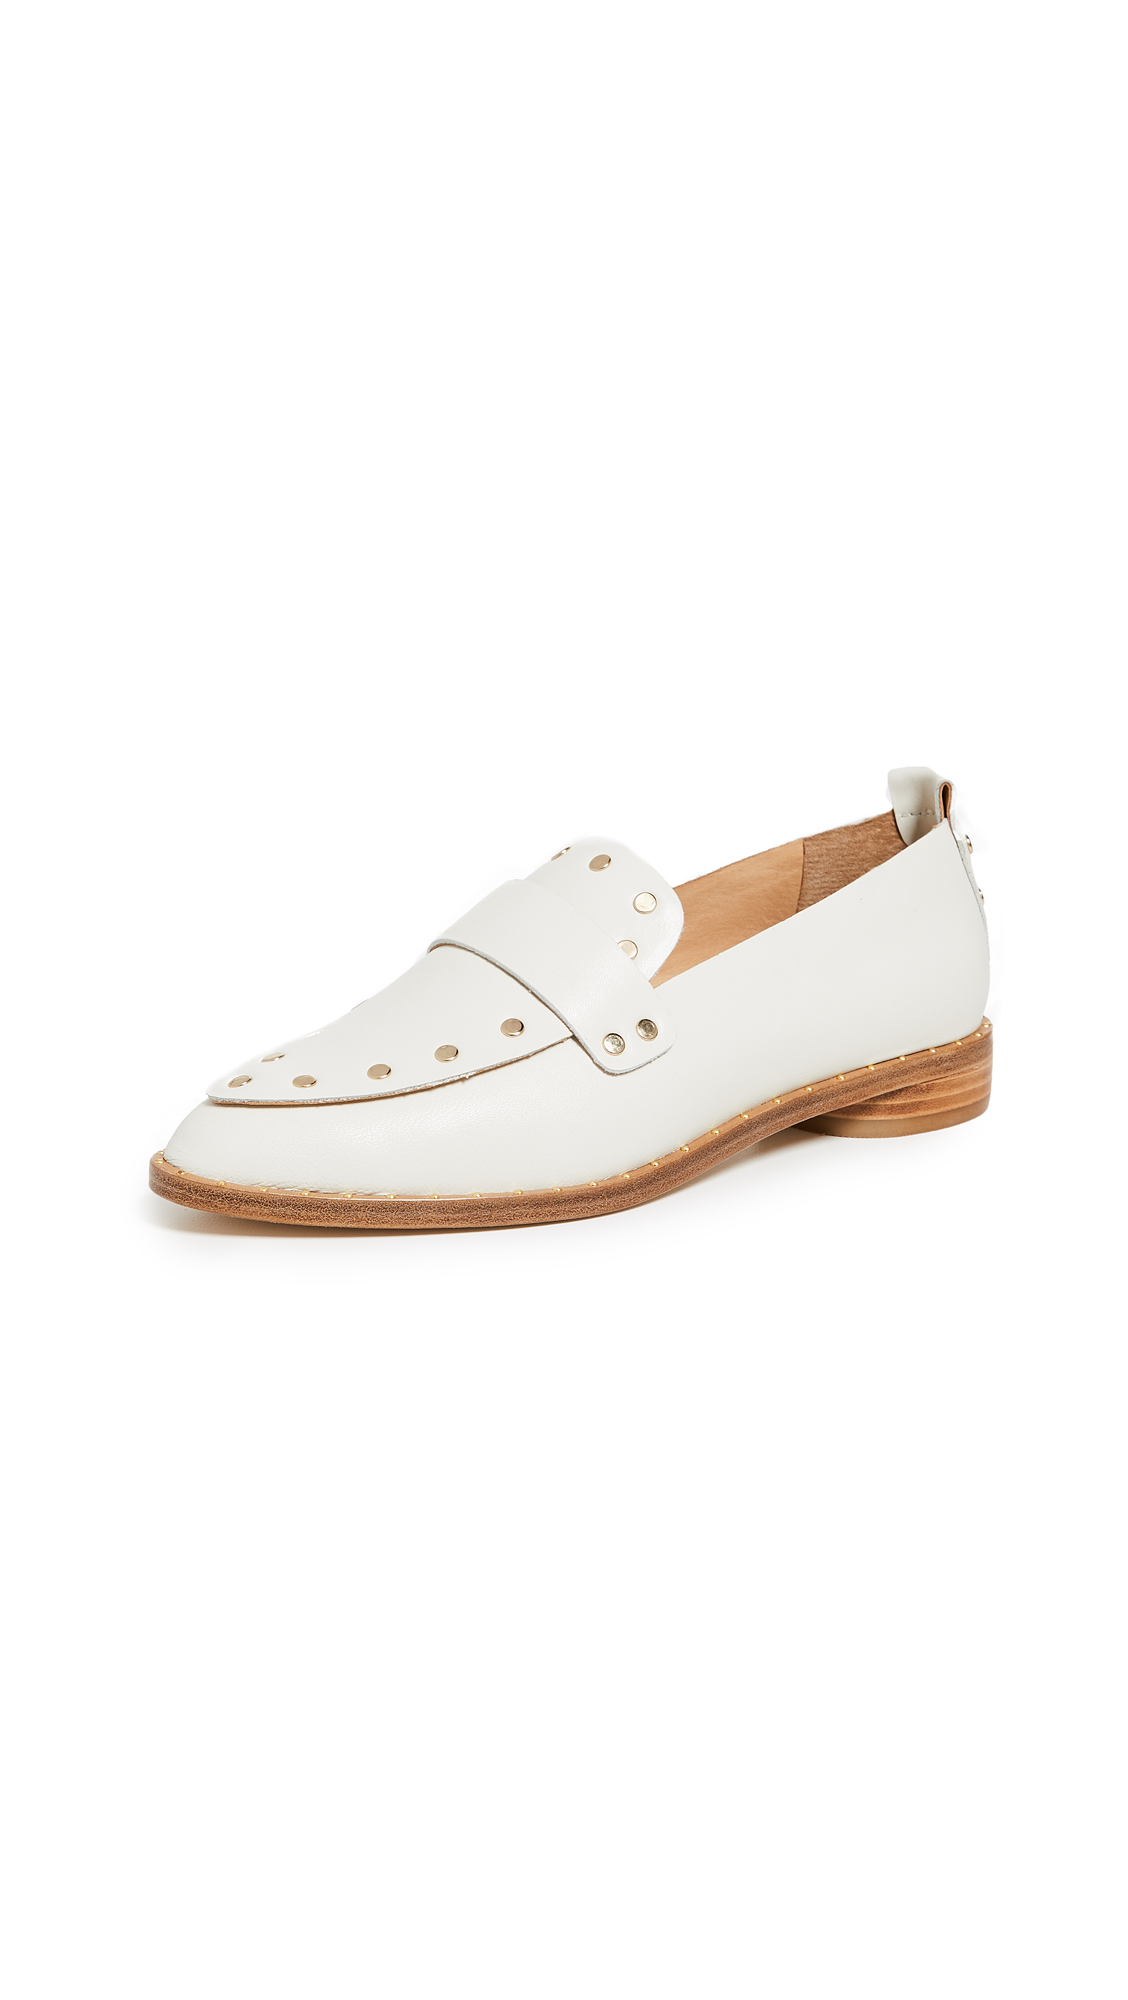 Joie Tifferson Loafers - Ivory